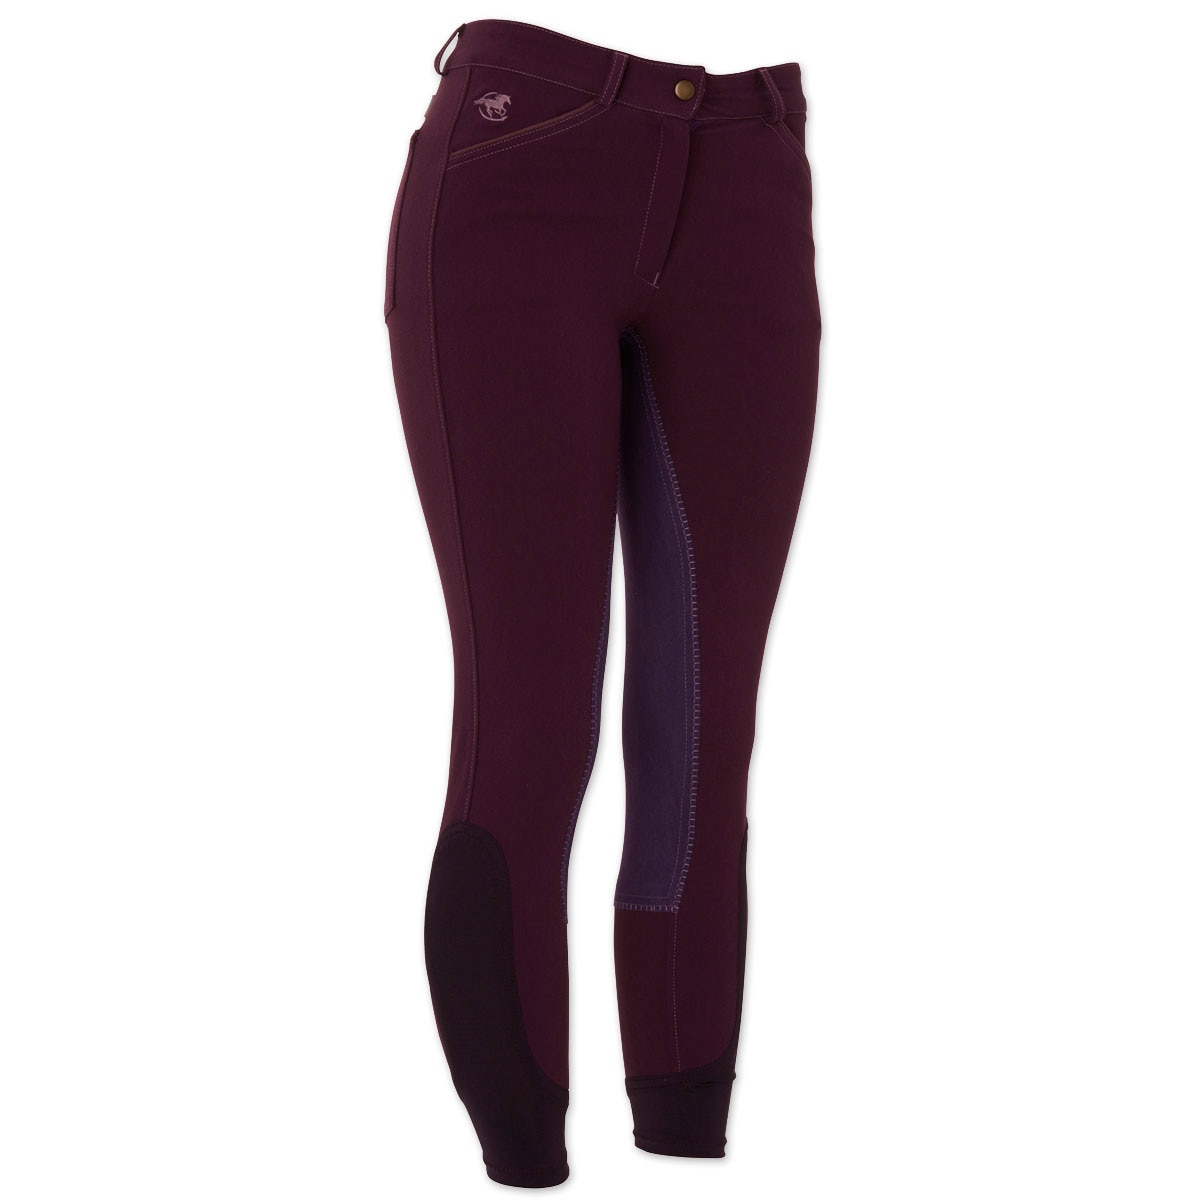 Piper Breeches by SmartPak - Mid Rise Full Seat - Clearance!